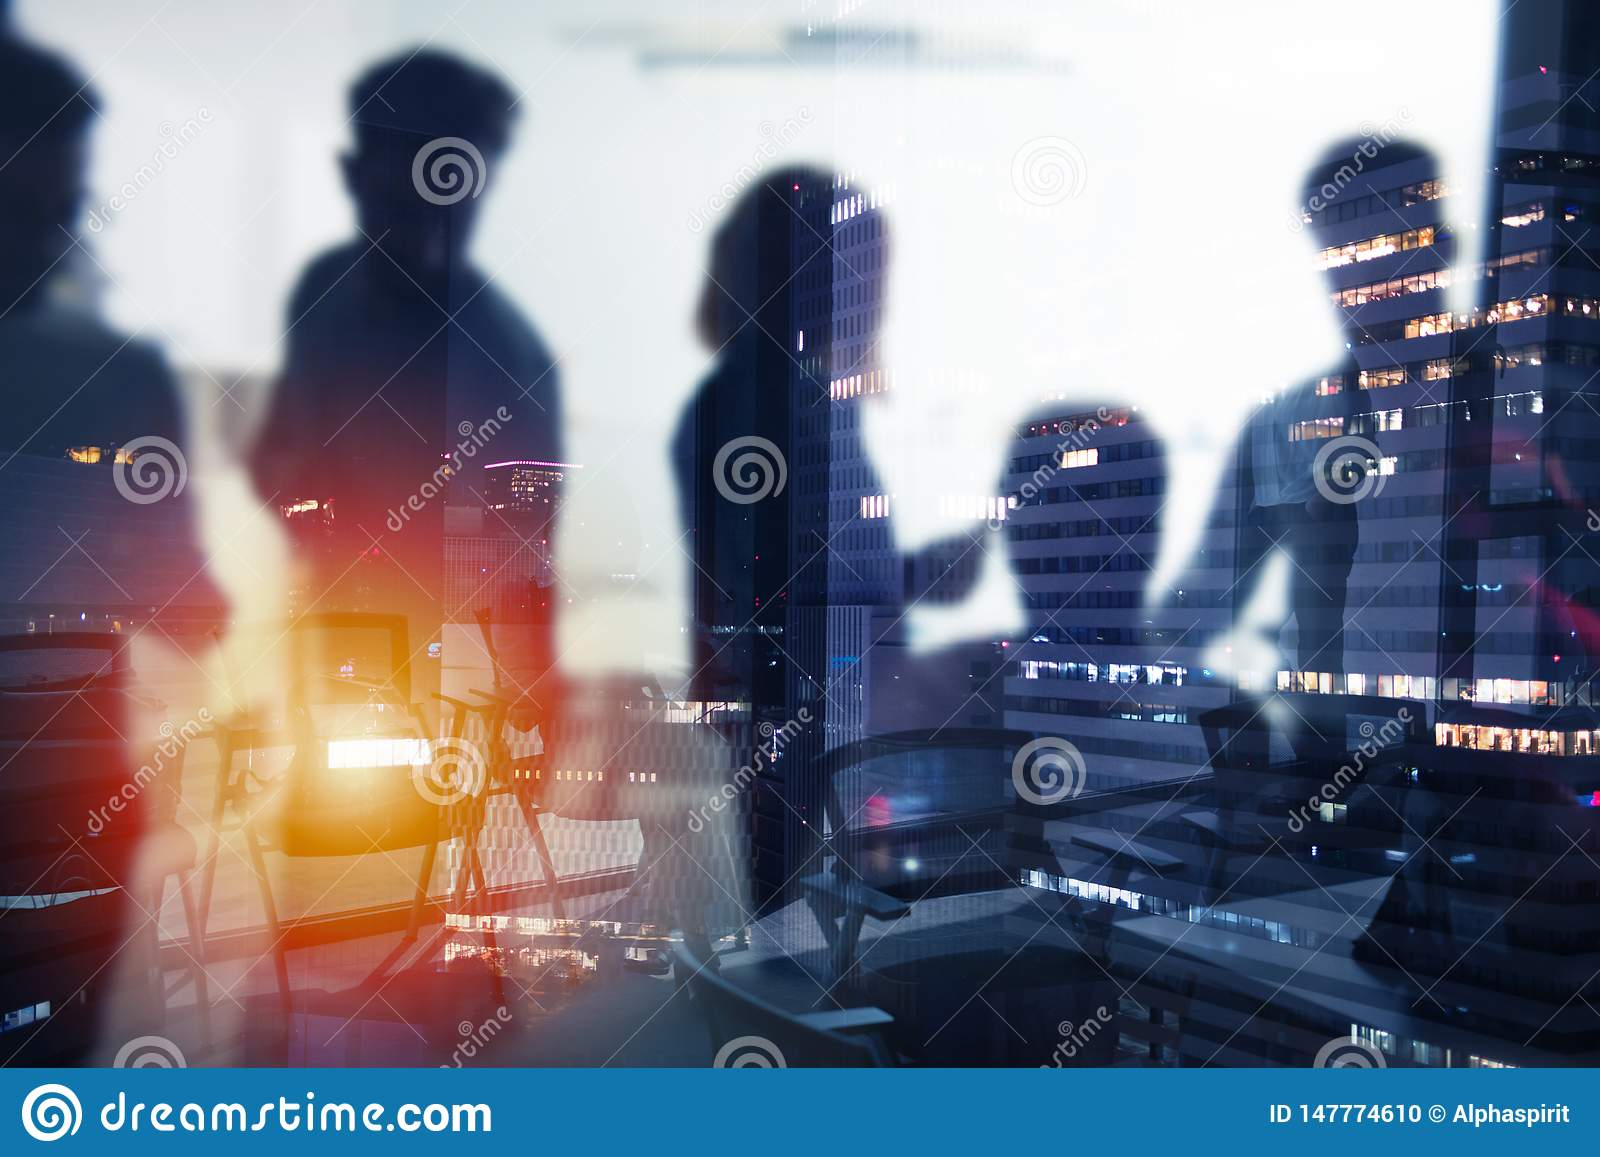 Background of business people that work during night